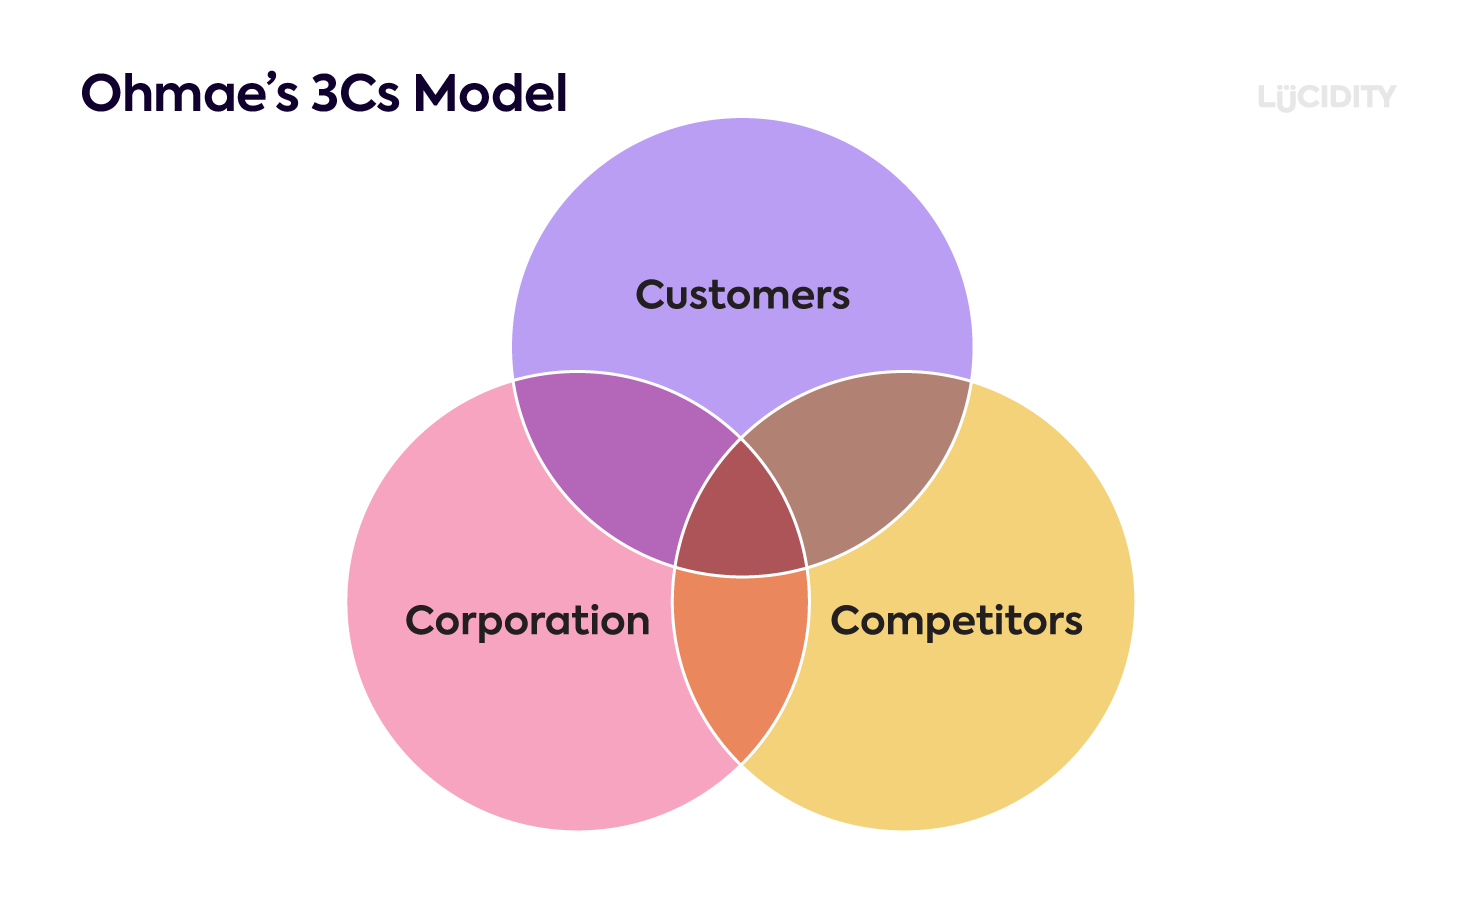 Ohmae's 3Cs Model